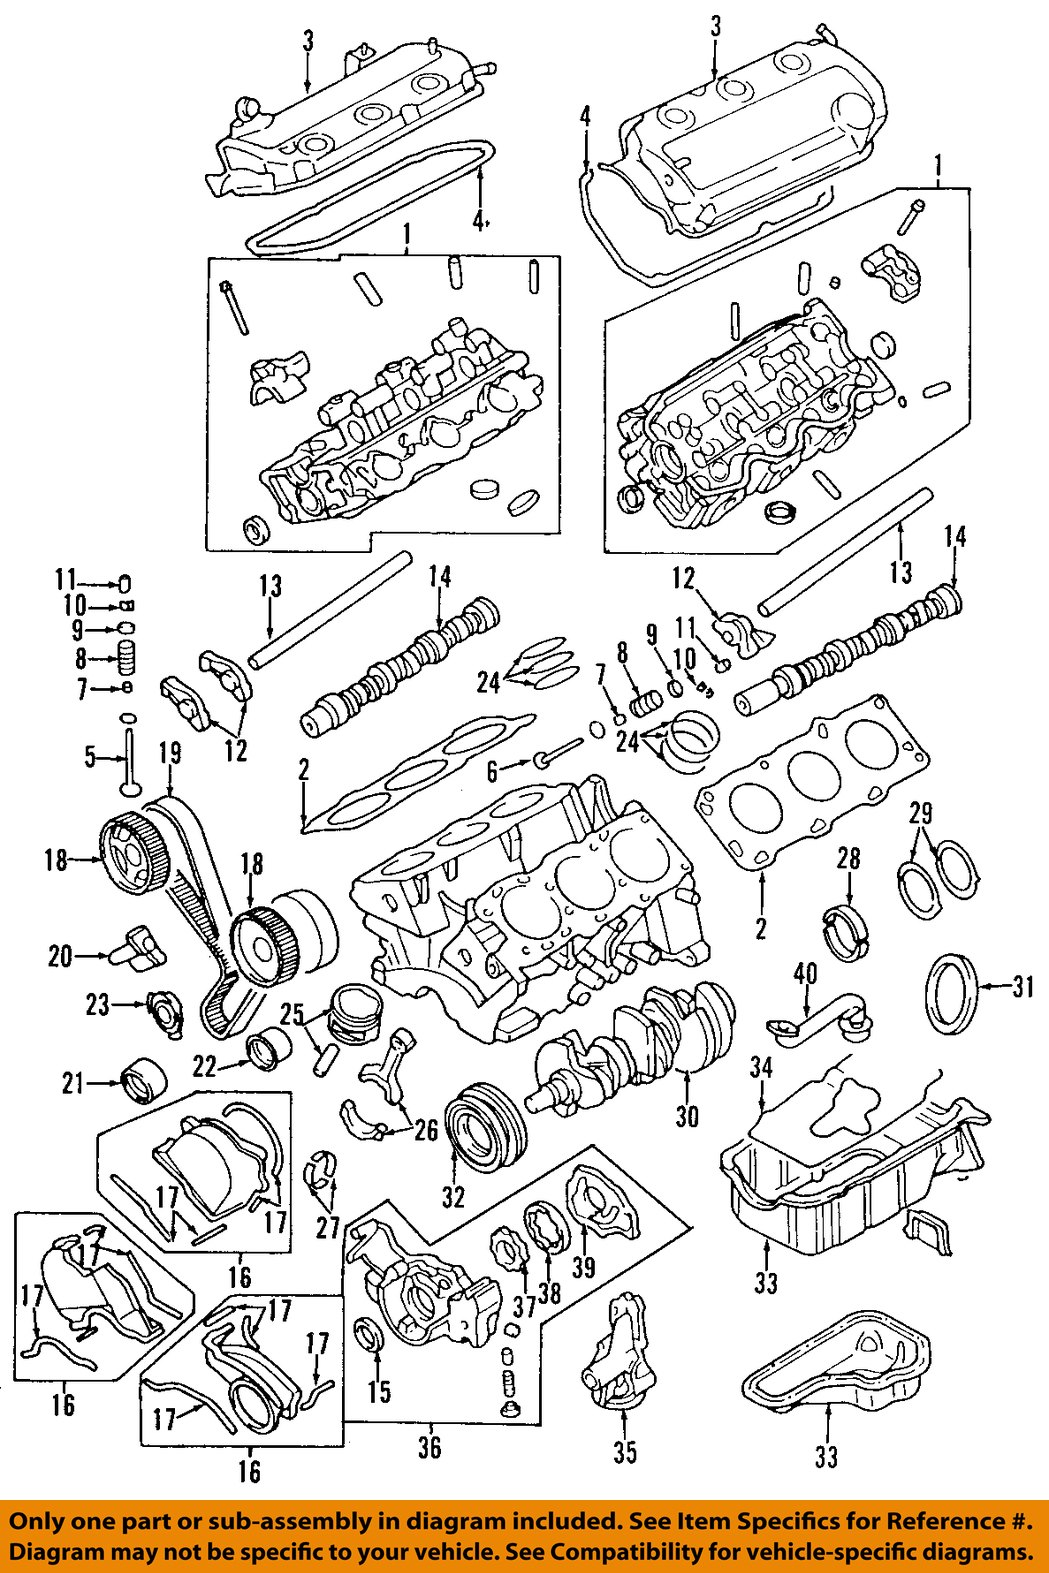 hight resolution of 2000 montero sport engine diagram wiring diagram operations 2000 montero sport engine diagram 2000 montero sport engine diagram